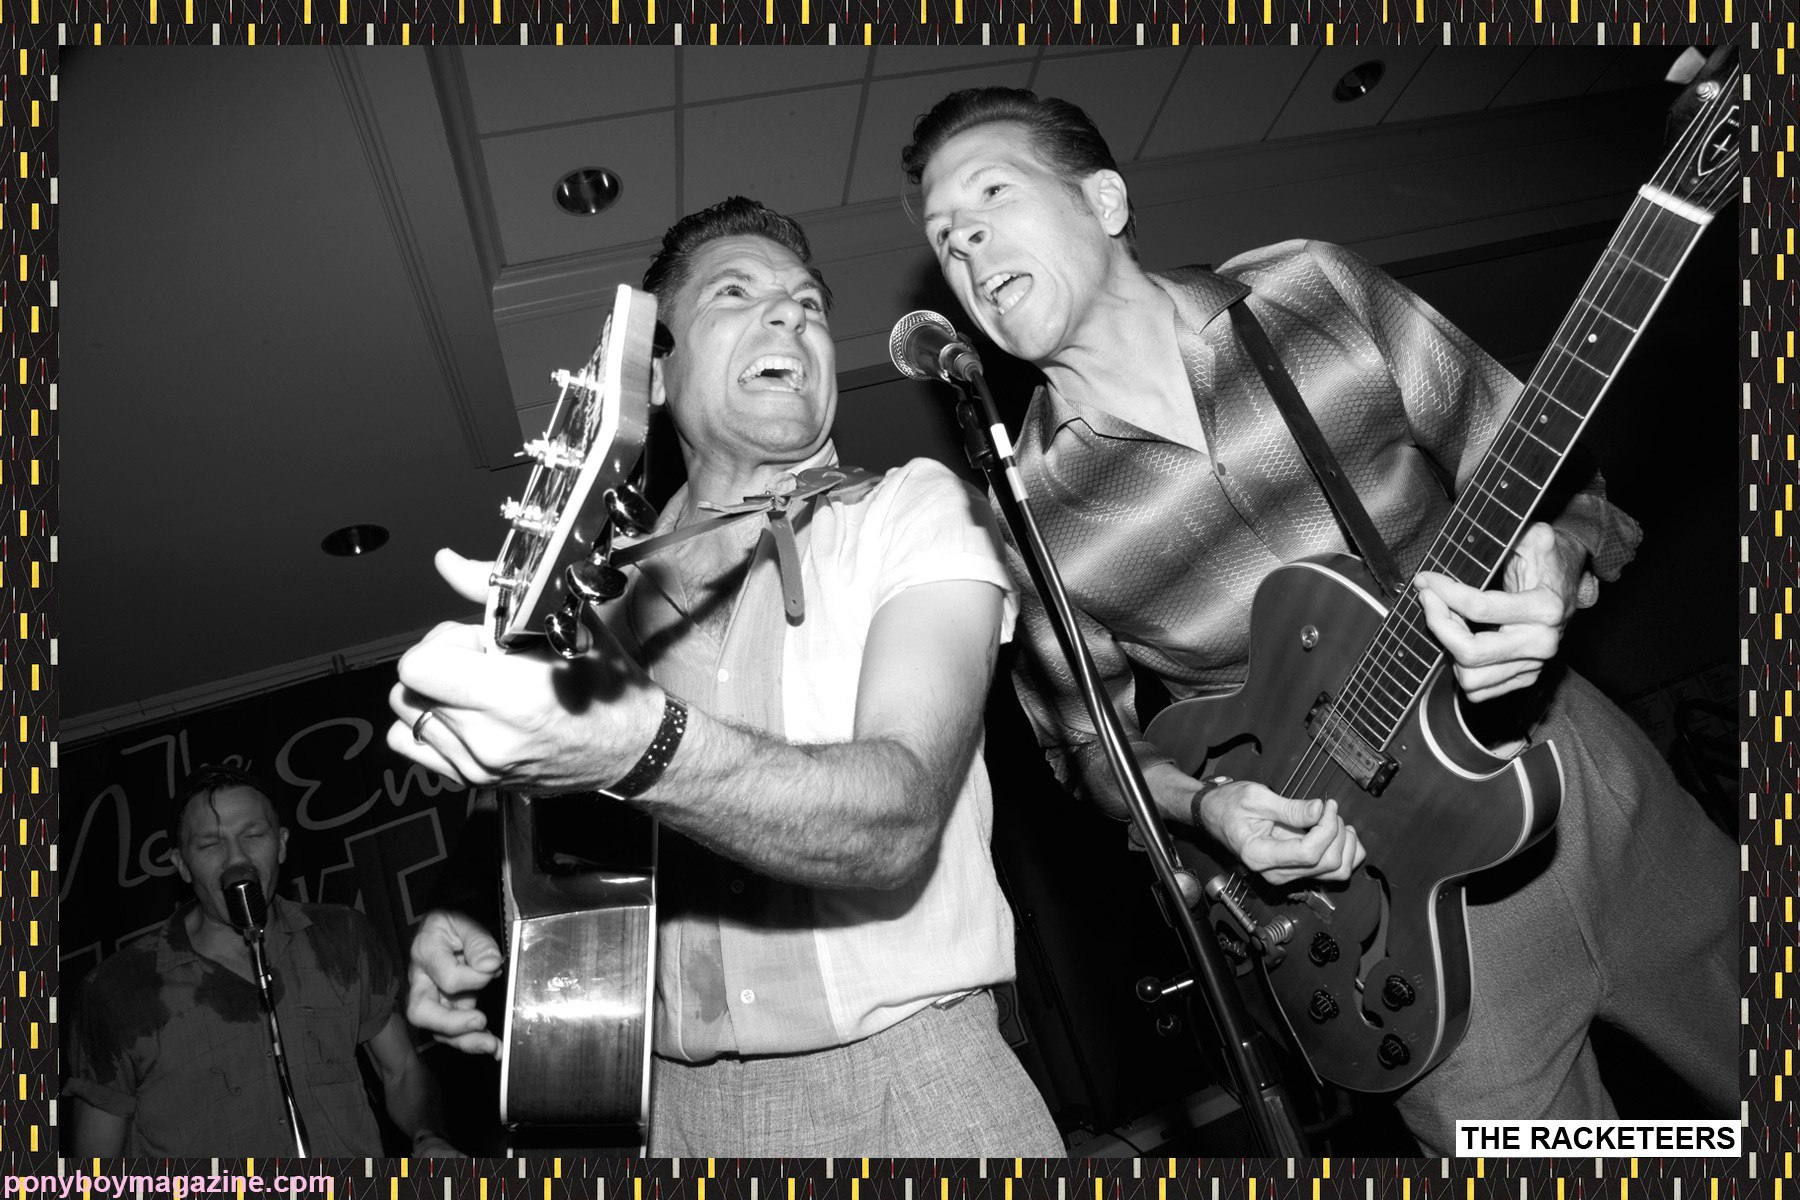 Boston rockabilly band live at The New England Shake-Up, photographed by Alexander Thompson for Ponyboy Magazine.